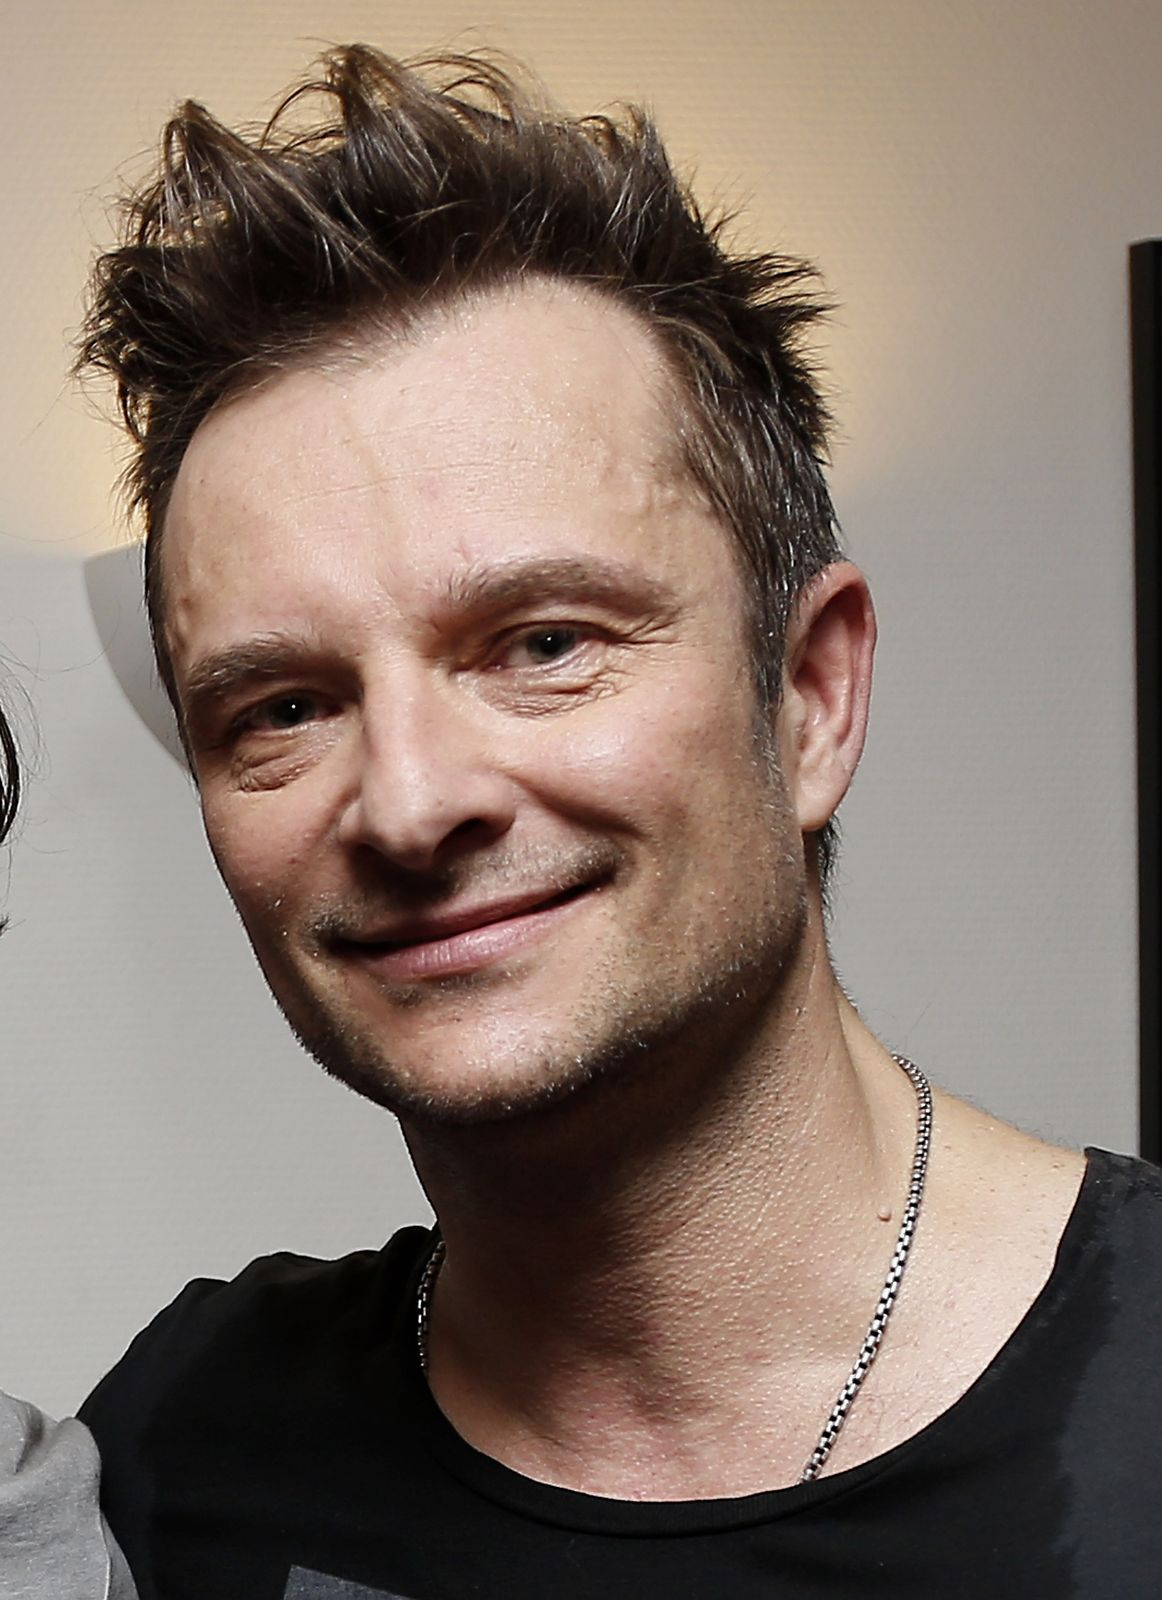 David Hallyday se produisent en direct au Théâtre Comedia à Paris, France. | Photo : Getty Images